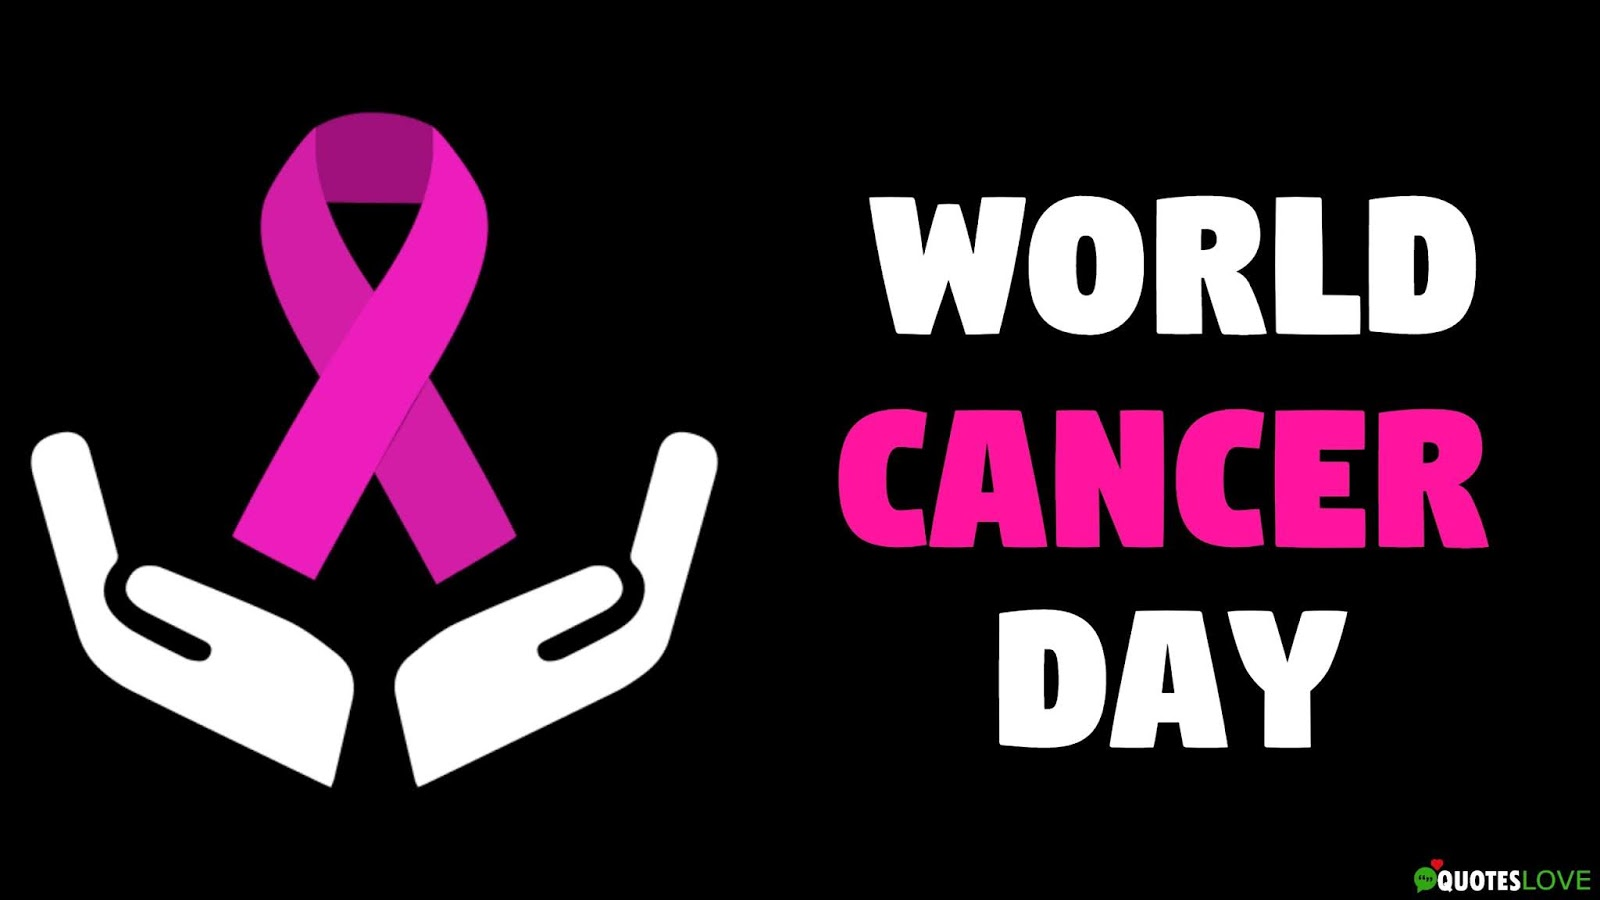 World Cancer Day Date, Objective, Theme, Slogan, Quotes In Hindi & English For Whatsapp & Facebook